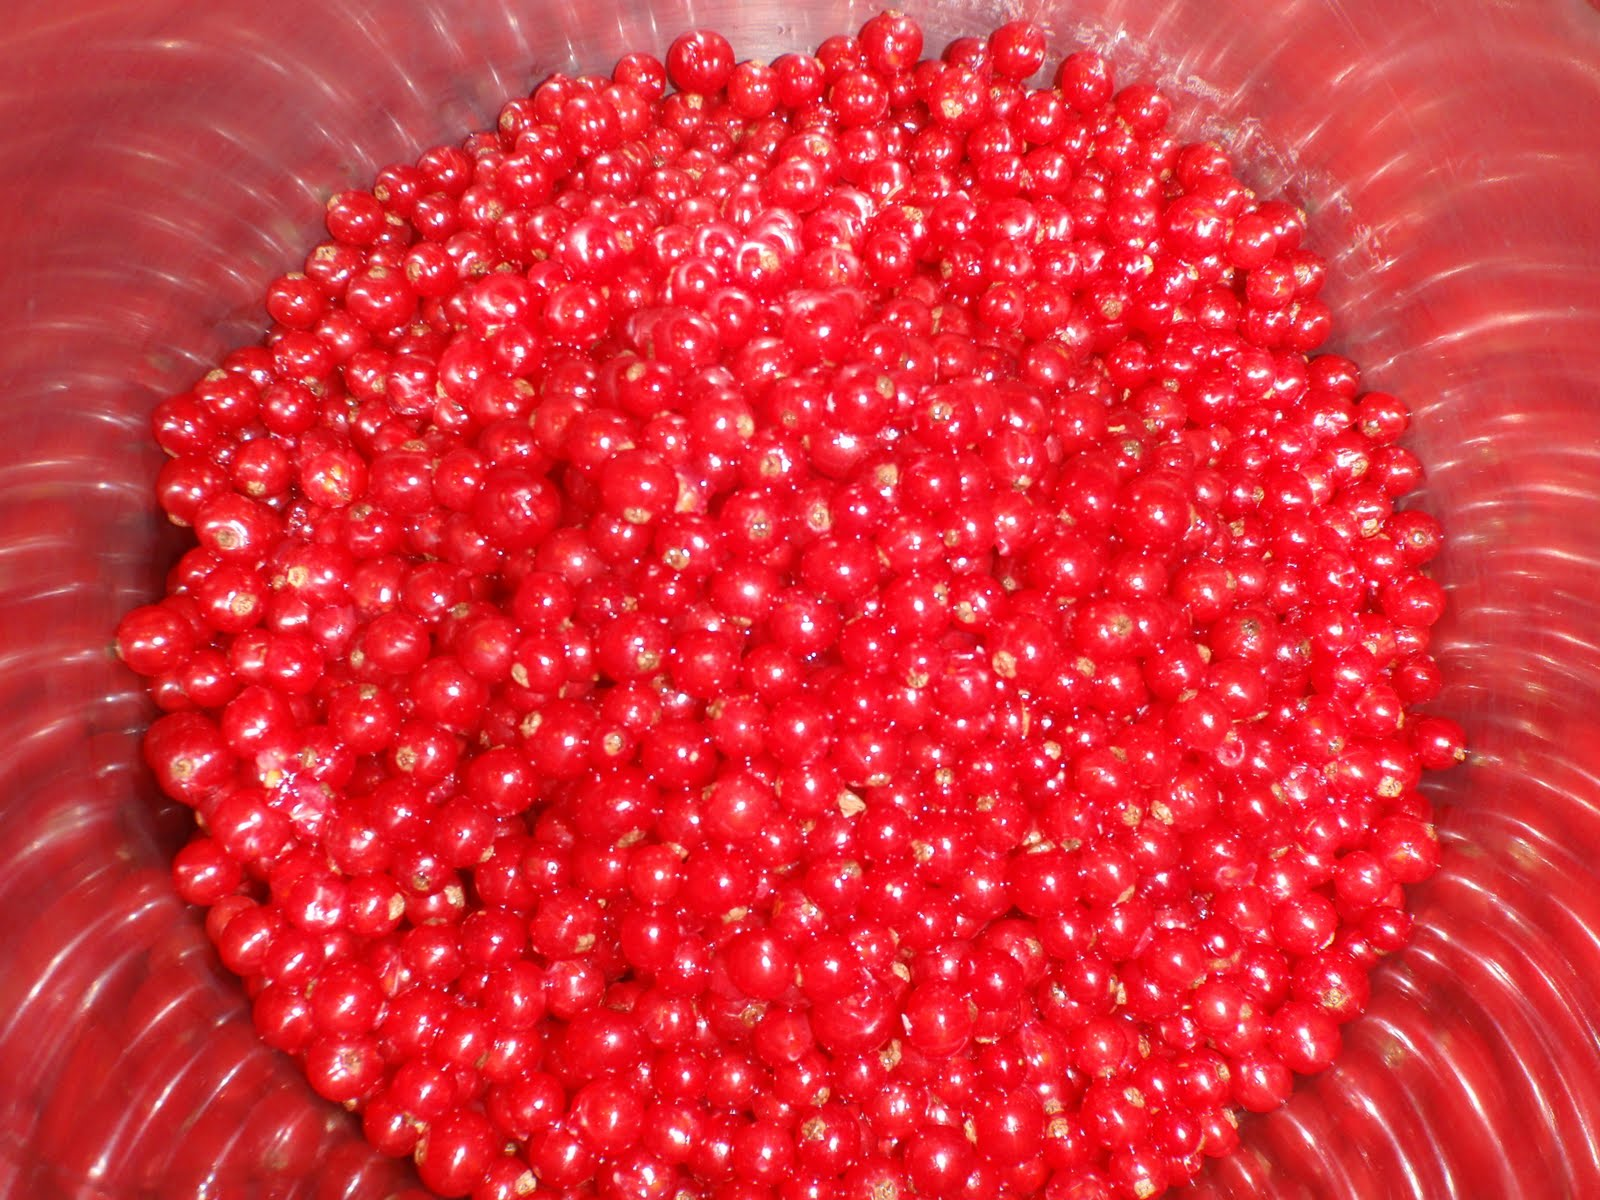 red currant jam 1 pound red currants stemmed and washed